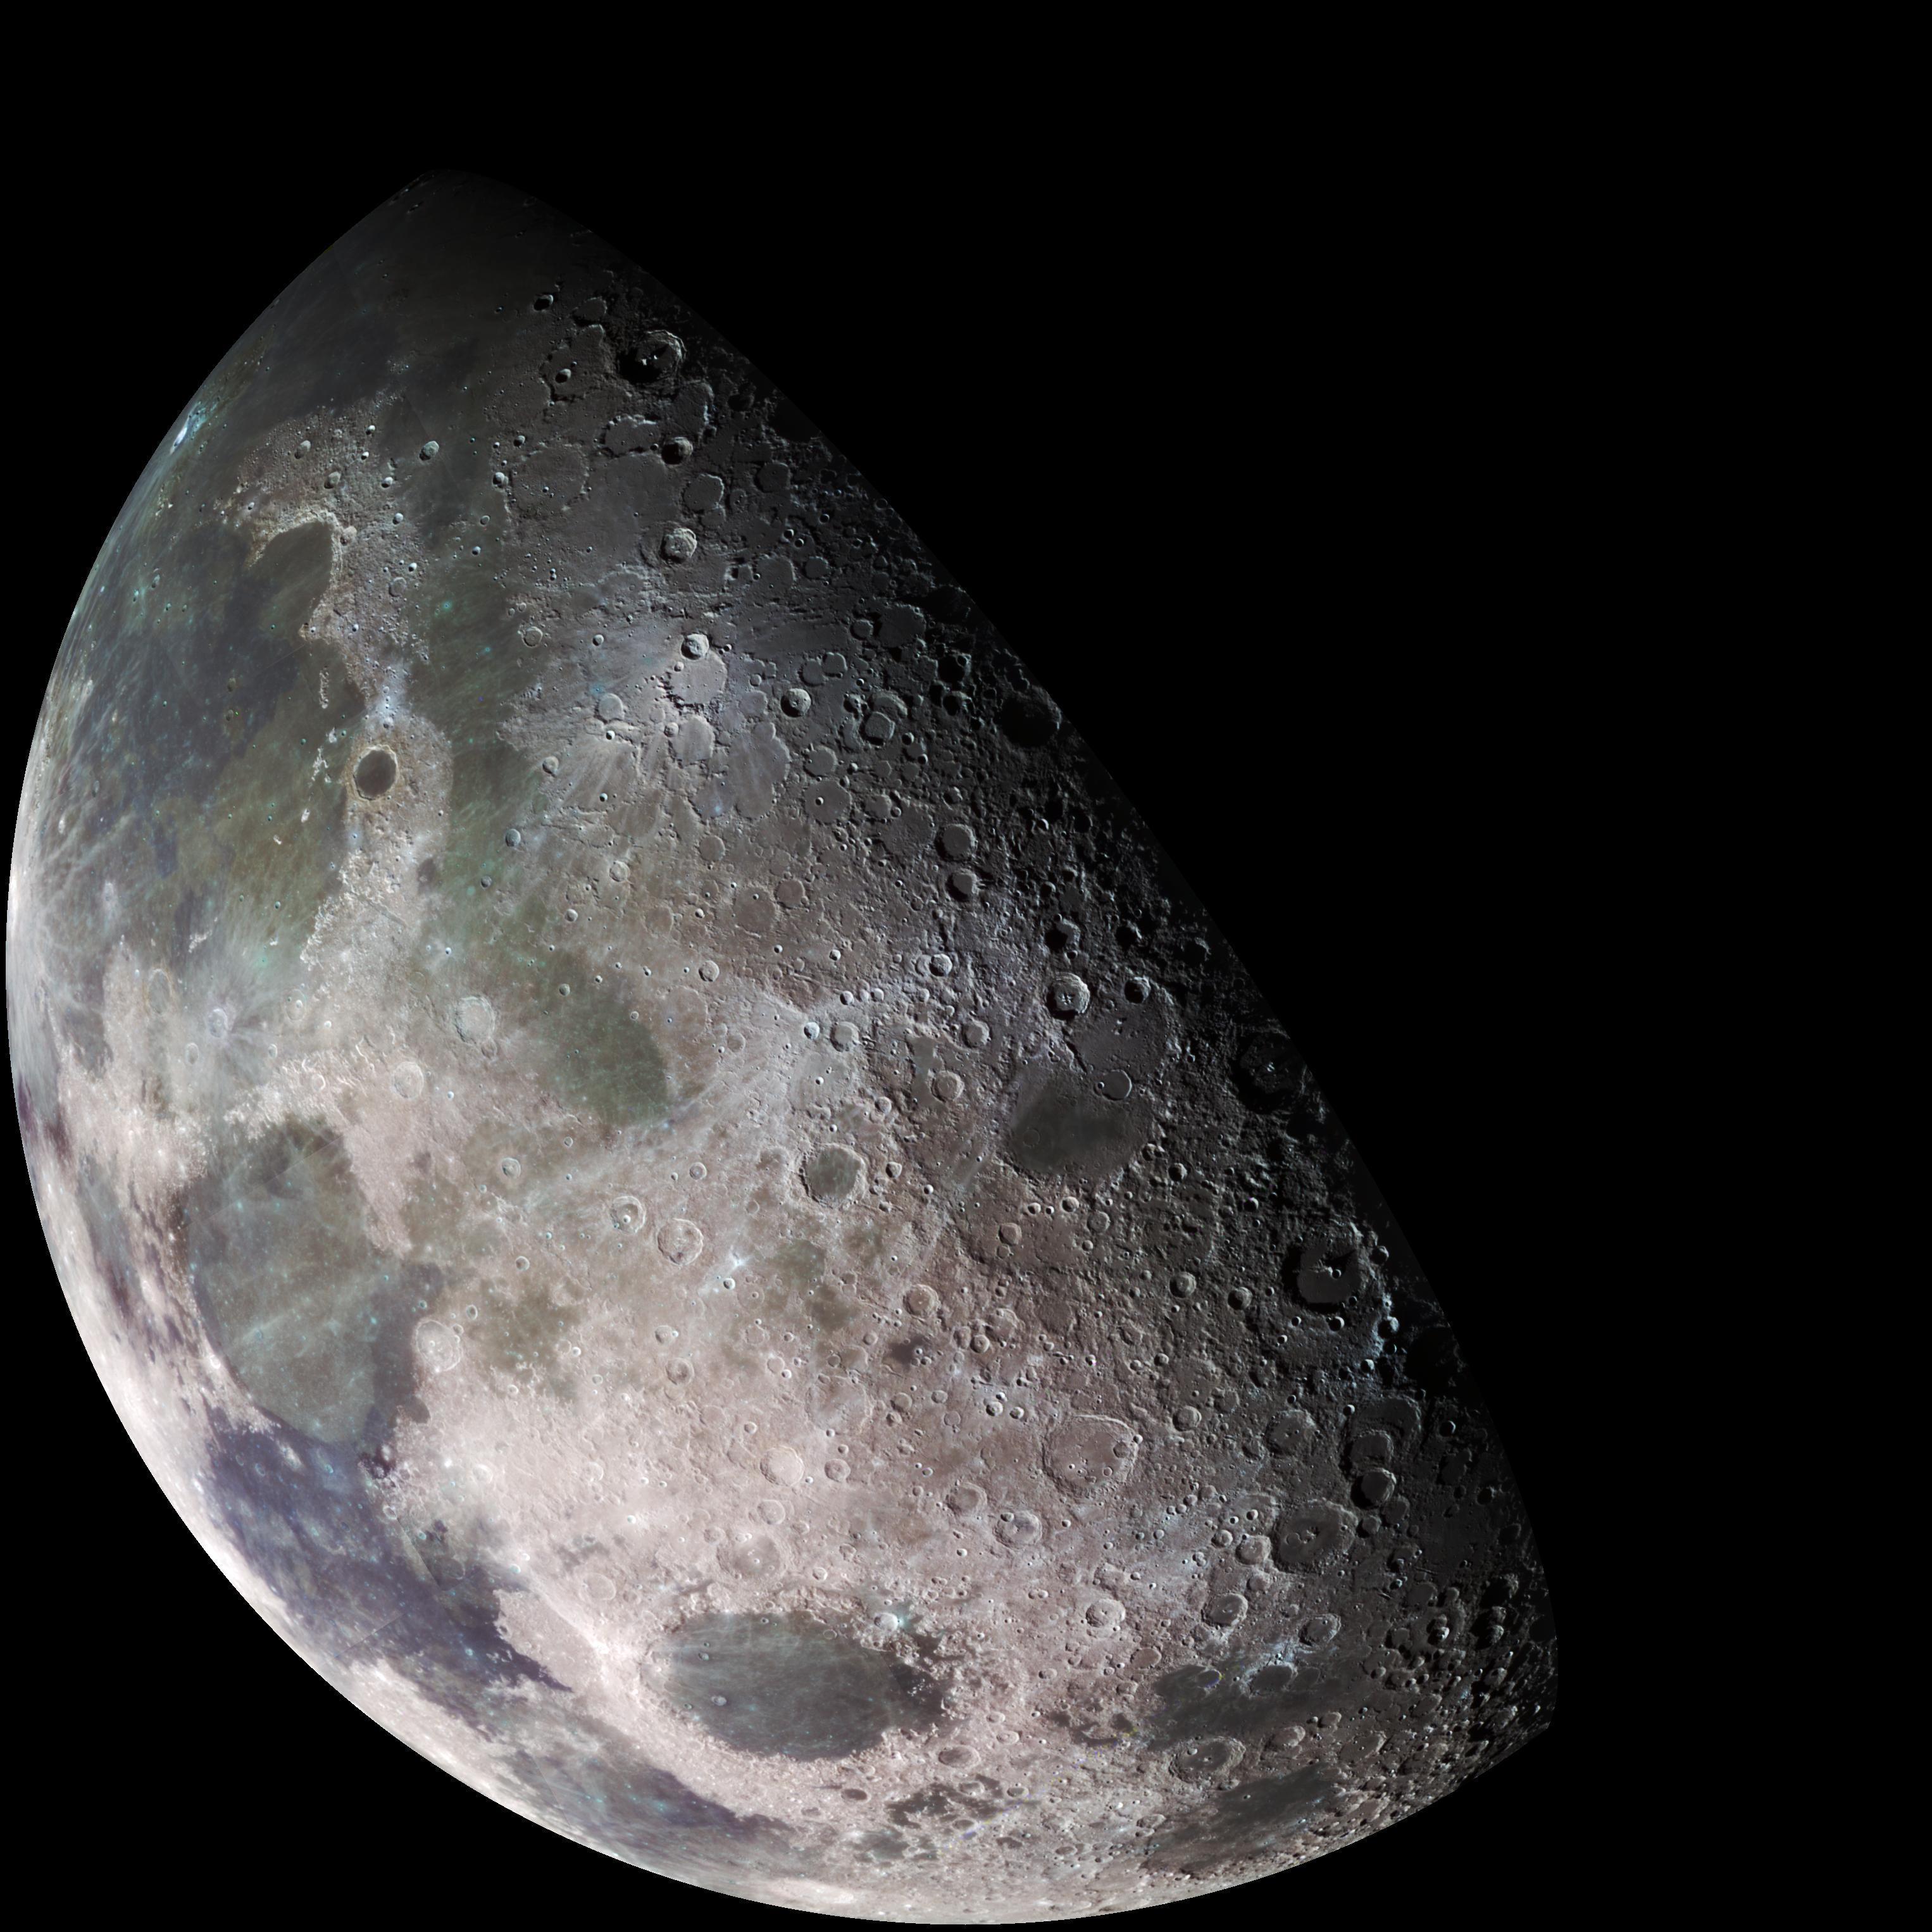 SpaceX Plans To Fly Two Private Citizens on Trip Around the Moon in 2018